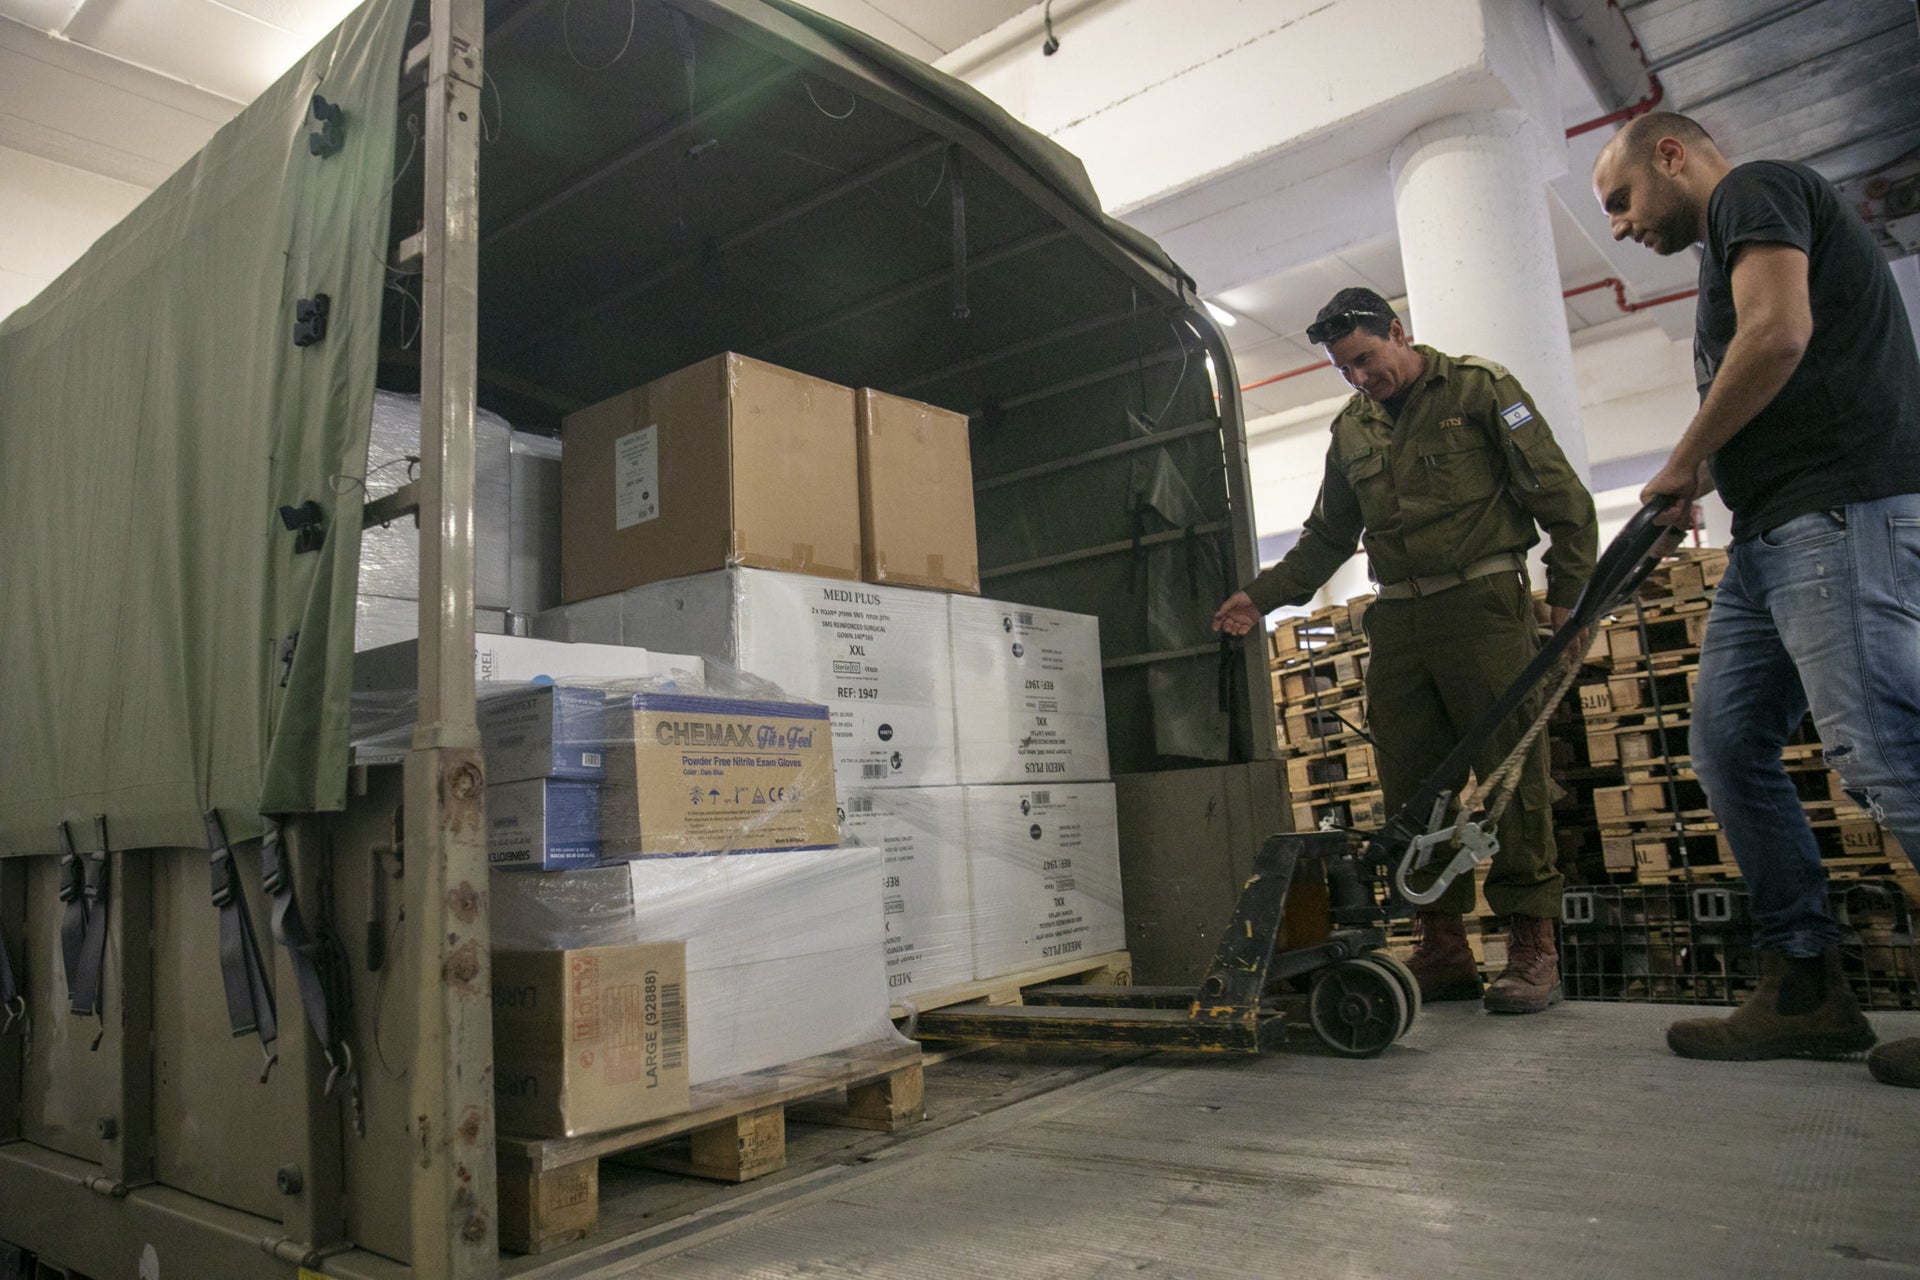 An Israeli soldier and a Sarel employee loading a truck in the Sarel warehouse, Netanya, March 17, 2020.